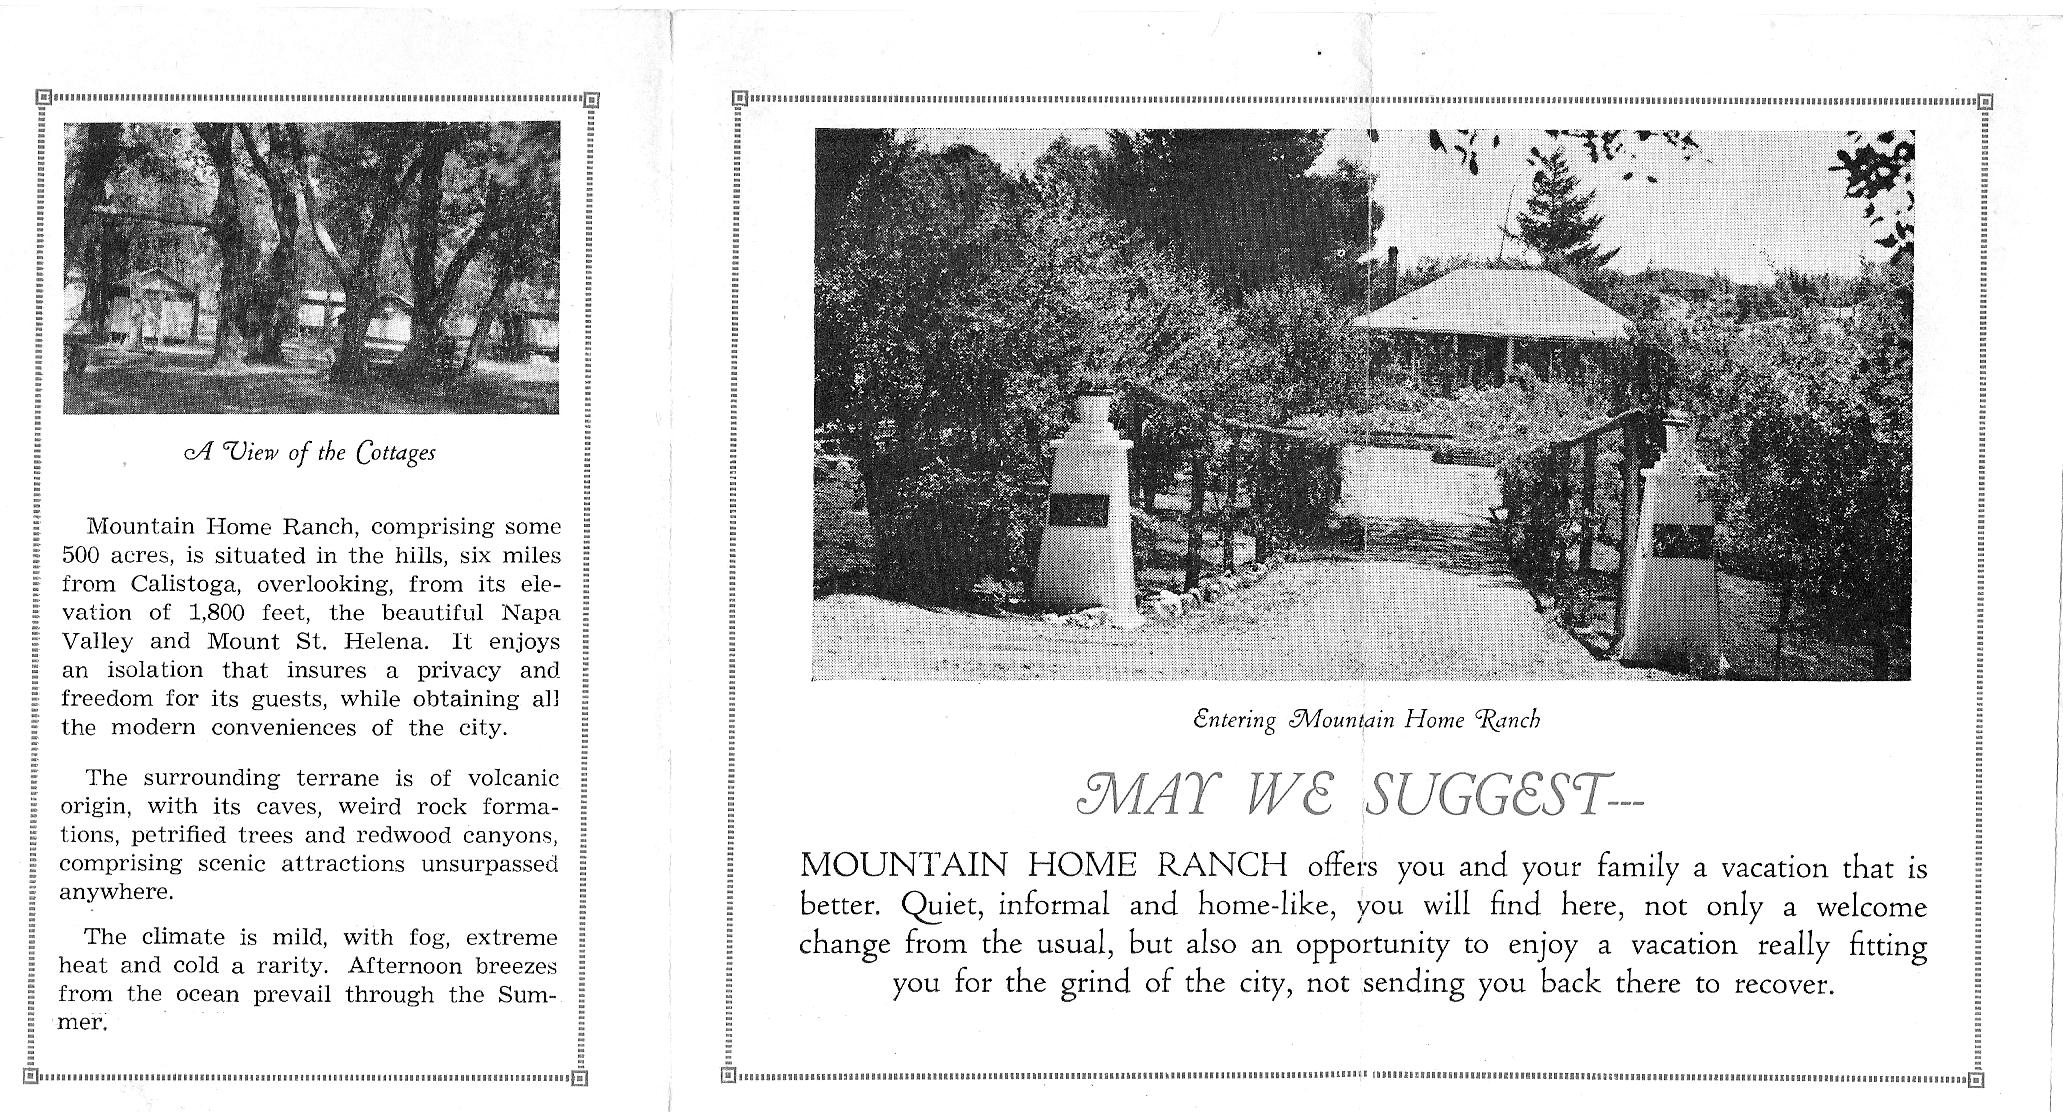 Mountain Home Ranch 2